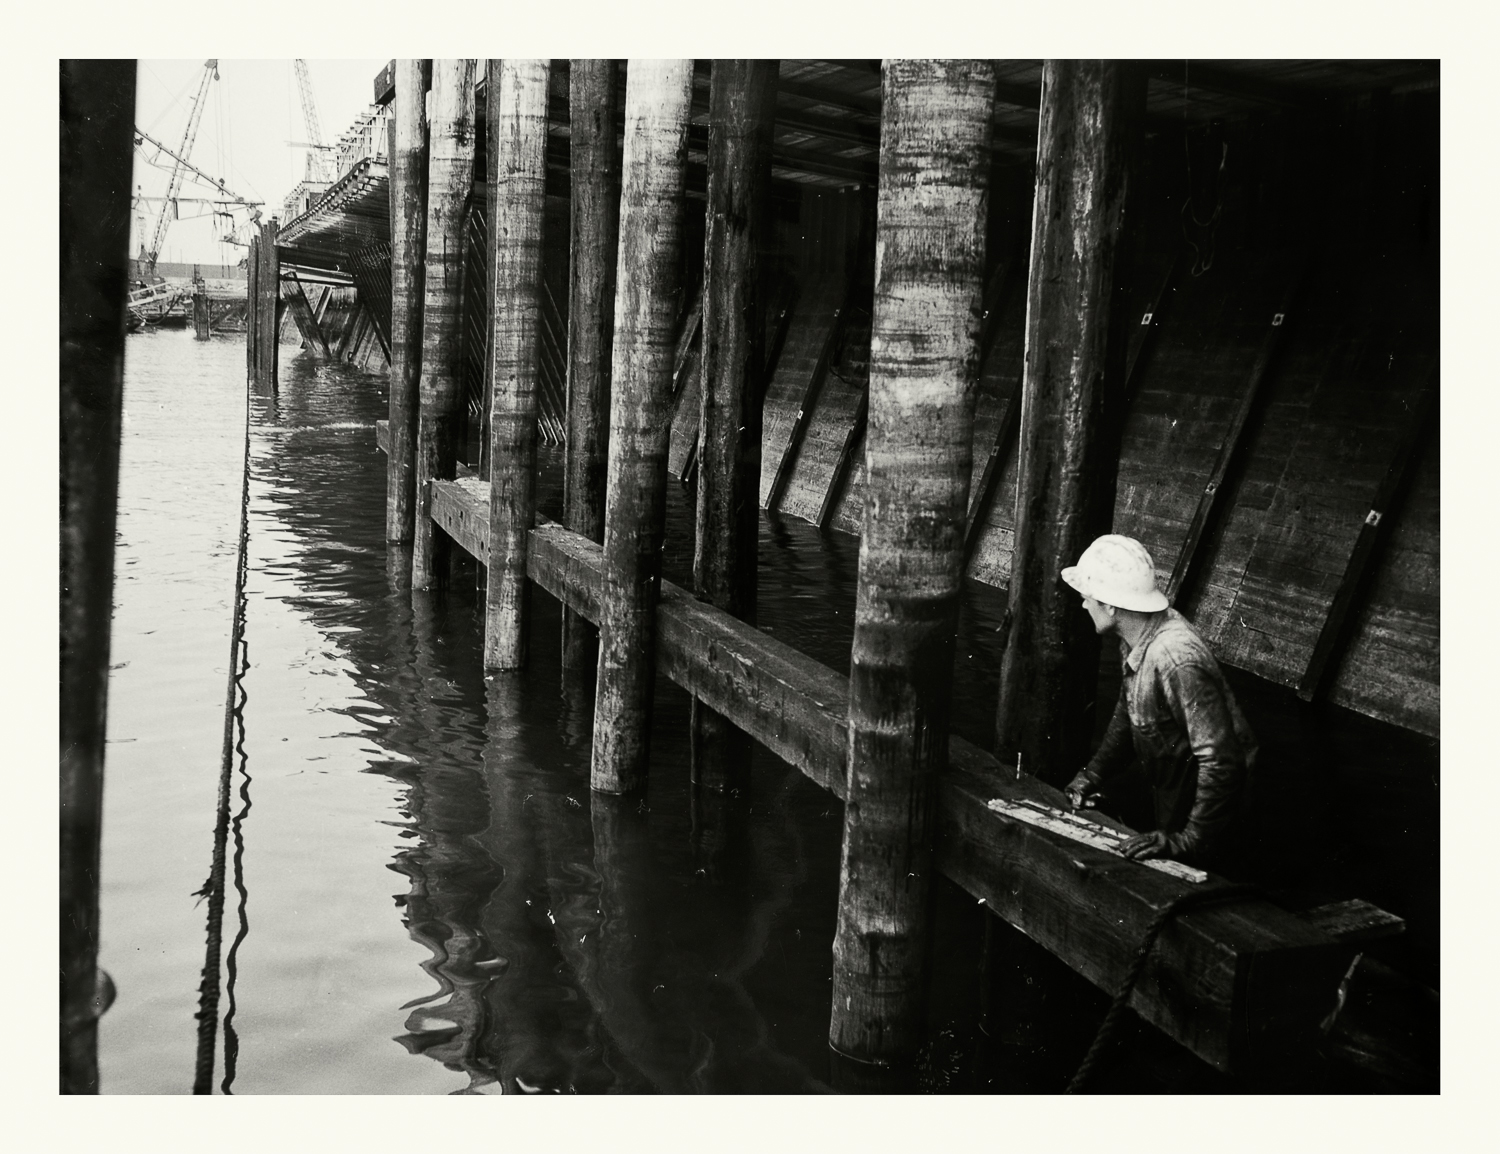 """Photograph No.188. """"Photograph of construction worker under the Boston Army Base Docks."""" N.D.; US Army Corps of Engineers. Records of the Office of the Chief of Engineers, 1789-1999, RG 77; NARA Boston."""